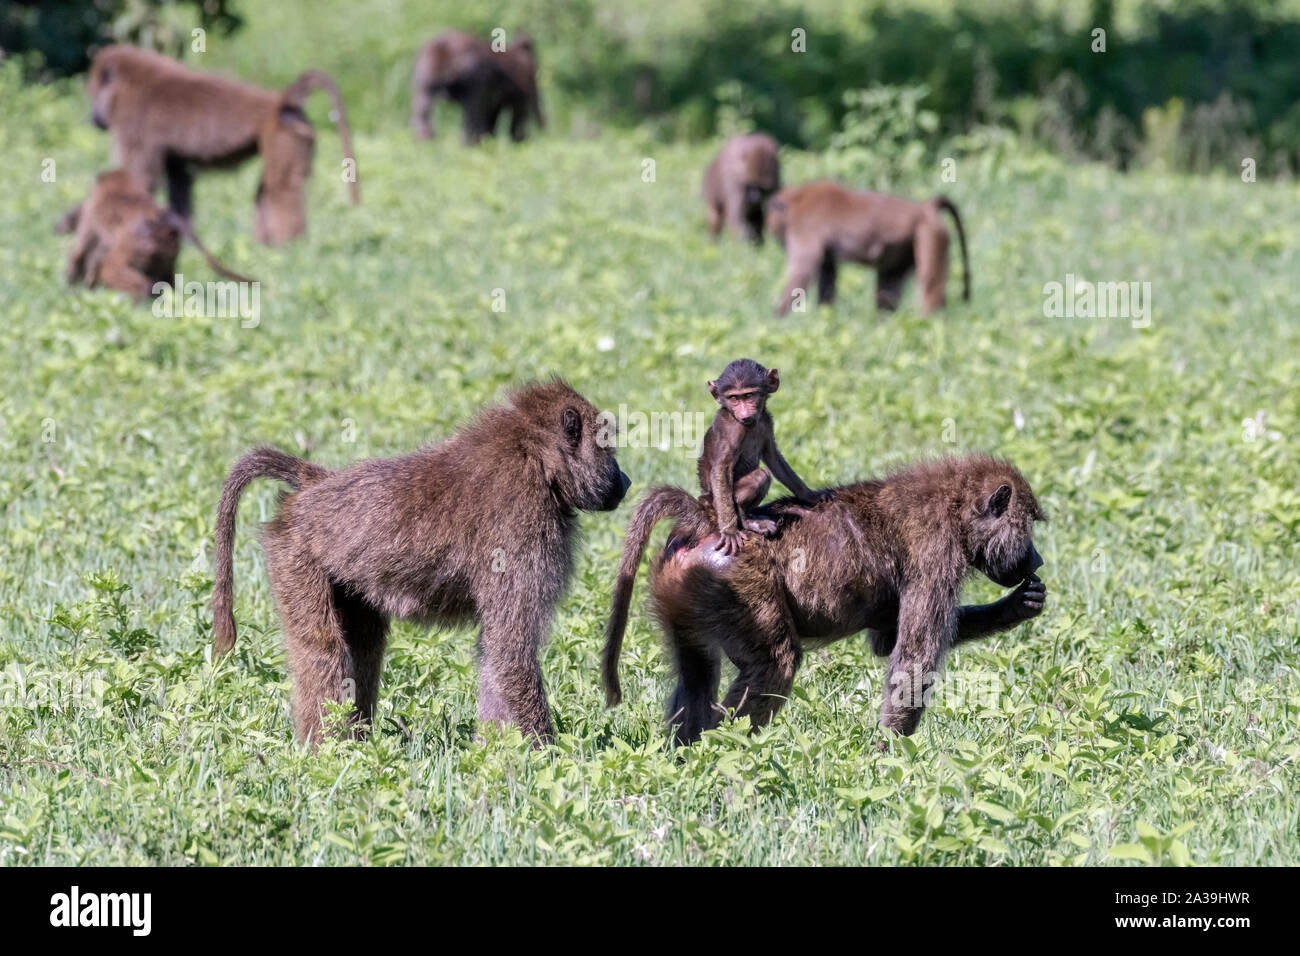 Too close for comfort, baby olive baboon reacts to the close presence of a large baboon, Ngorongoro Crater, Tanzania Stock Photo